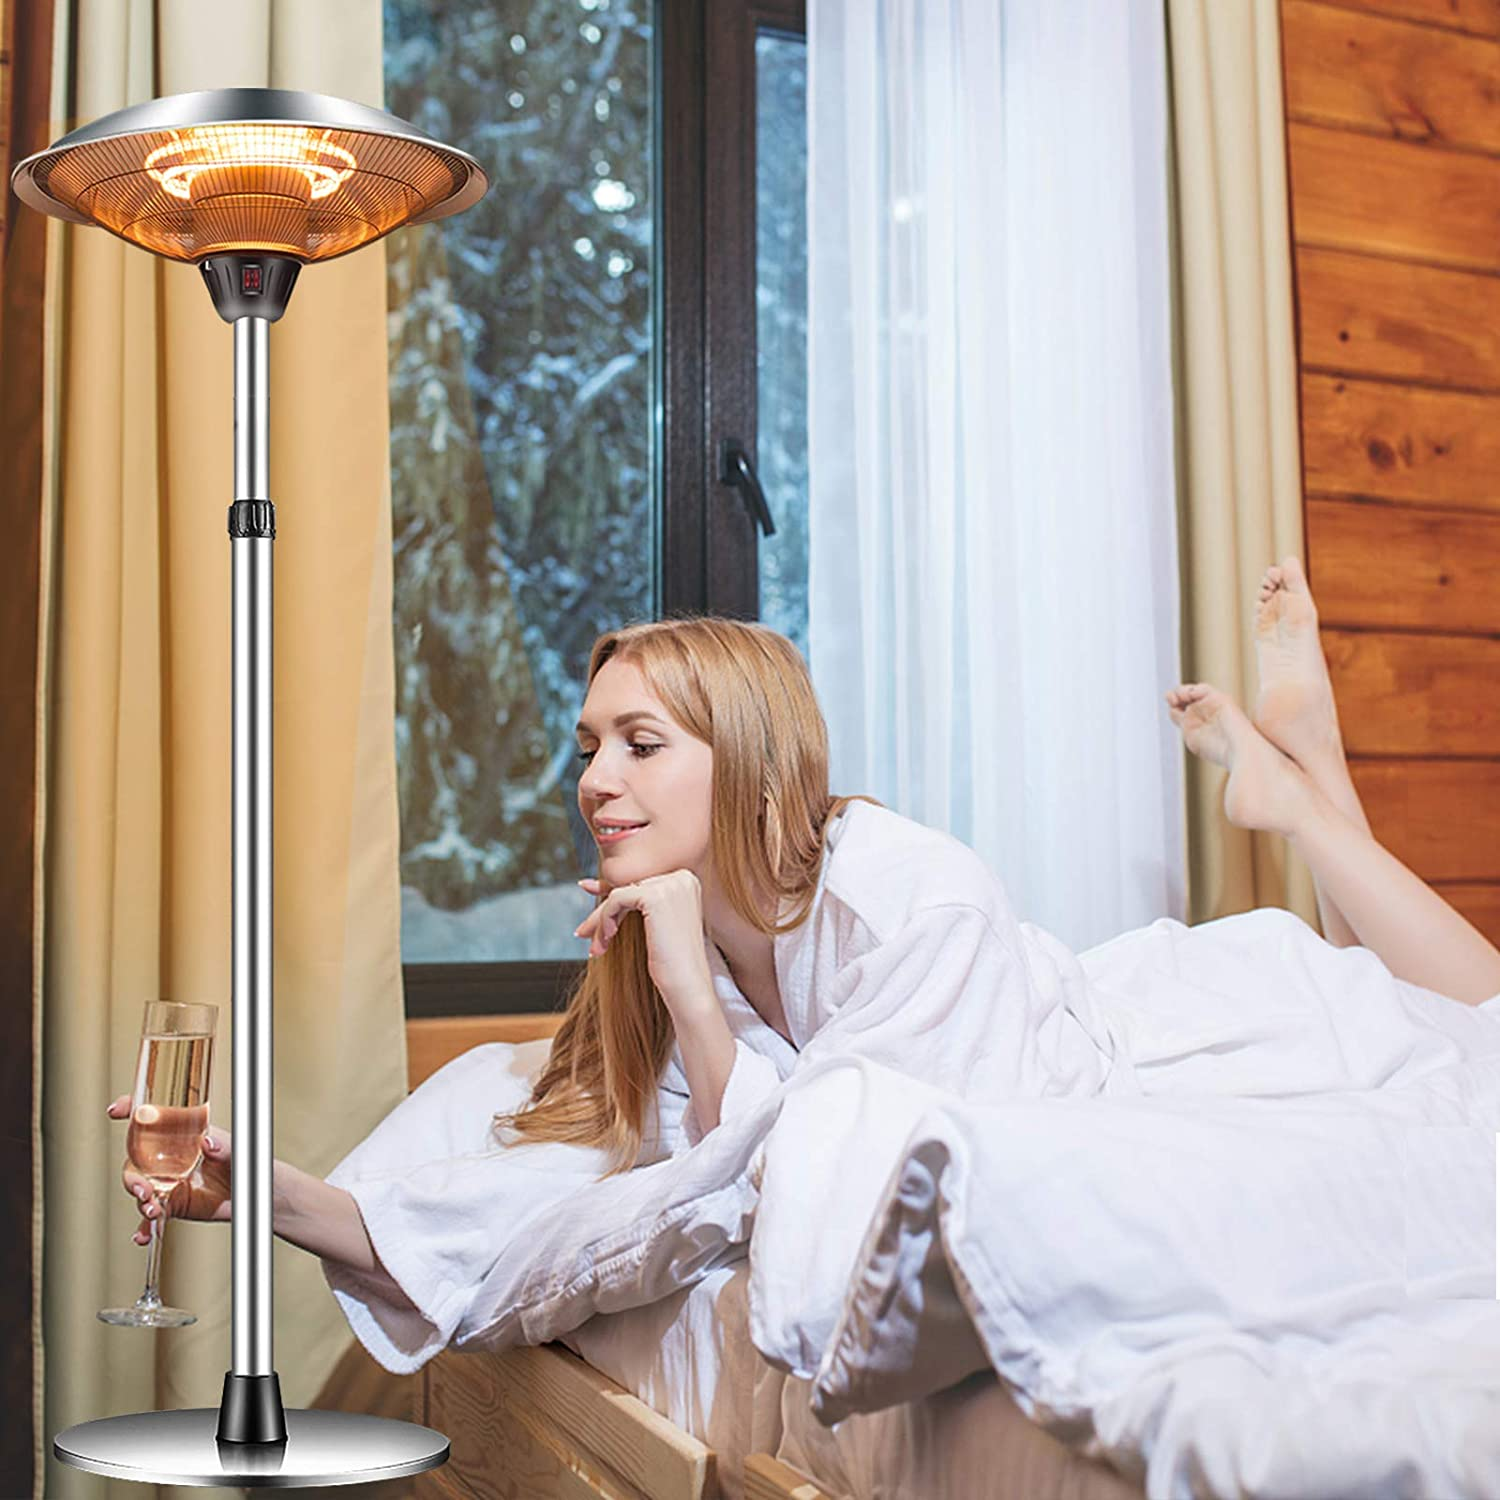 Patio Heater Outdoor Electric Garage Max 54% OFF - Infrared Ca shipfree